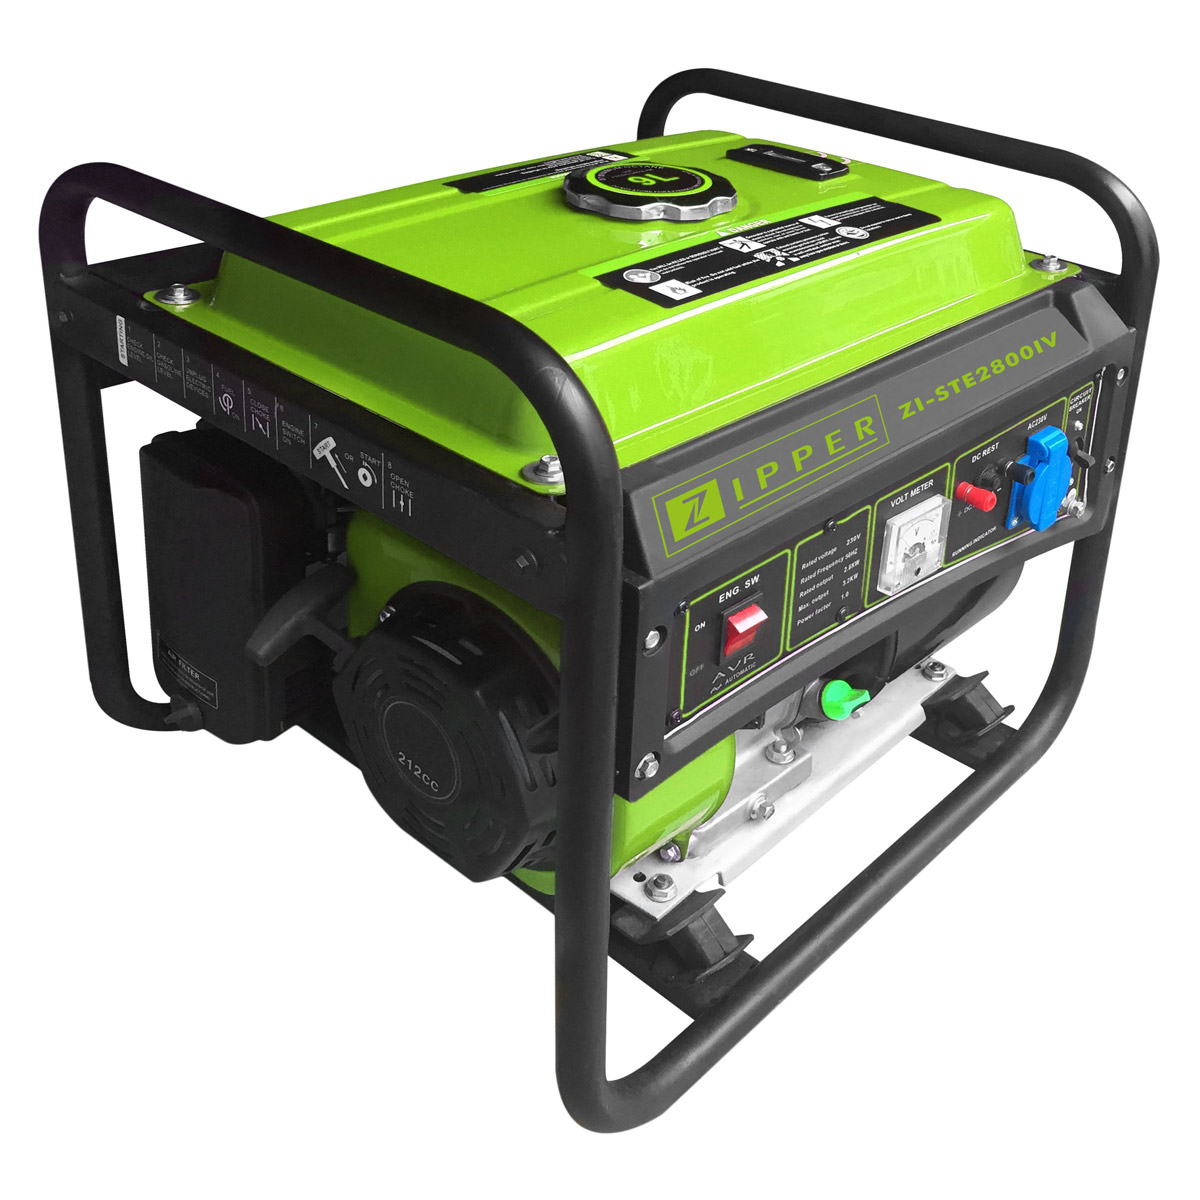 Image of   ZI-STE2800IV Inverter generator 3,2kW Zipper